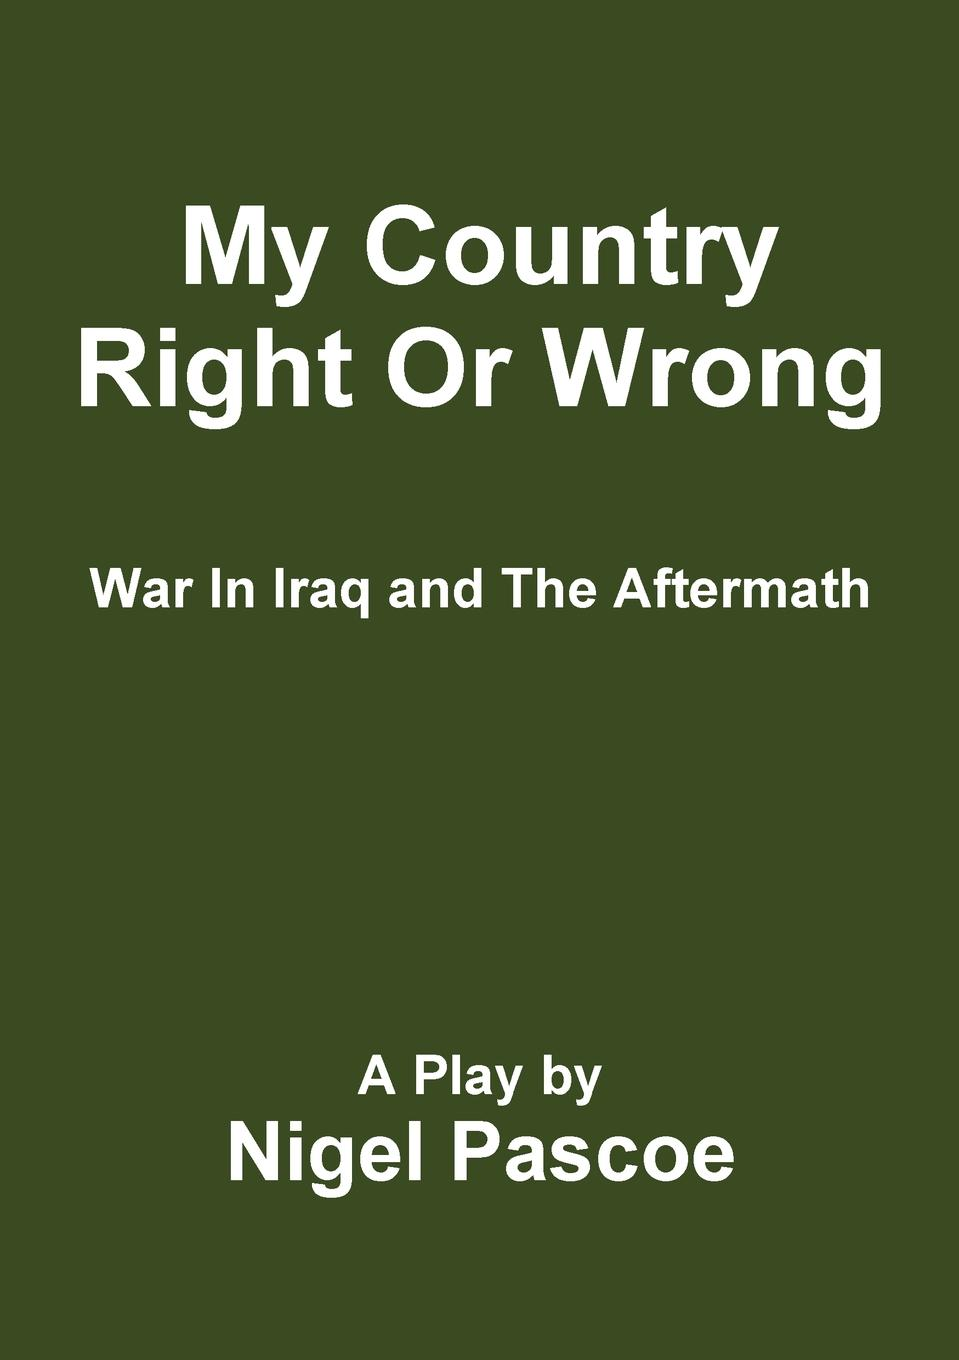 Nigel Pascoe My Country Right Or Wrong war photography images of armed conflict and its aftermath